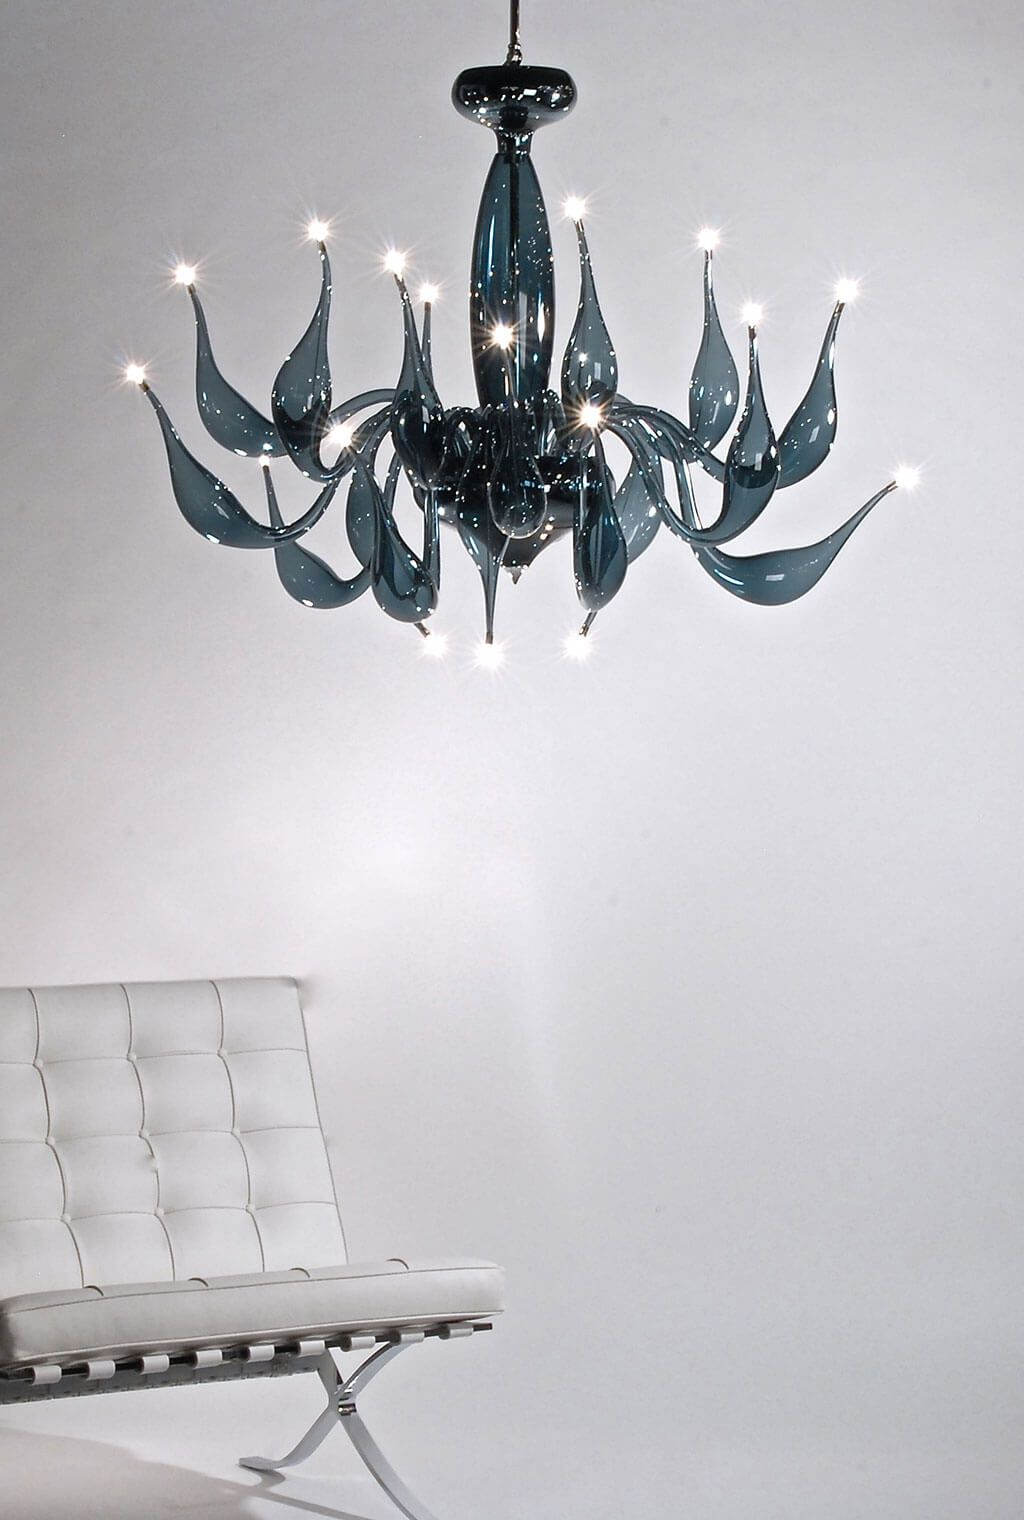 Modern grey Murano glass art chandelier with 24 lights